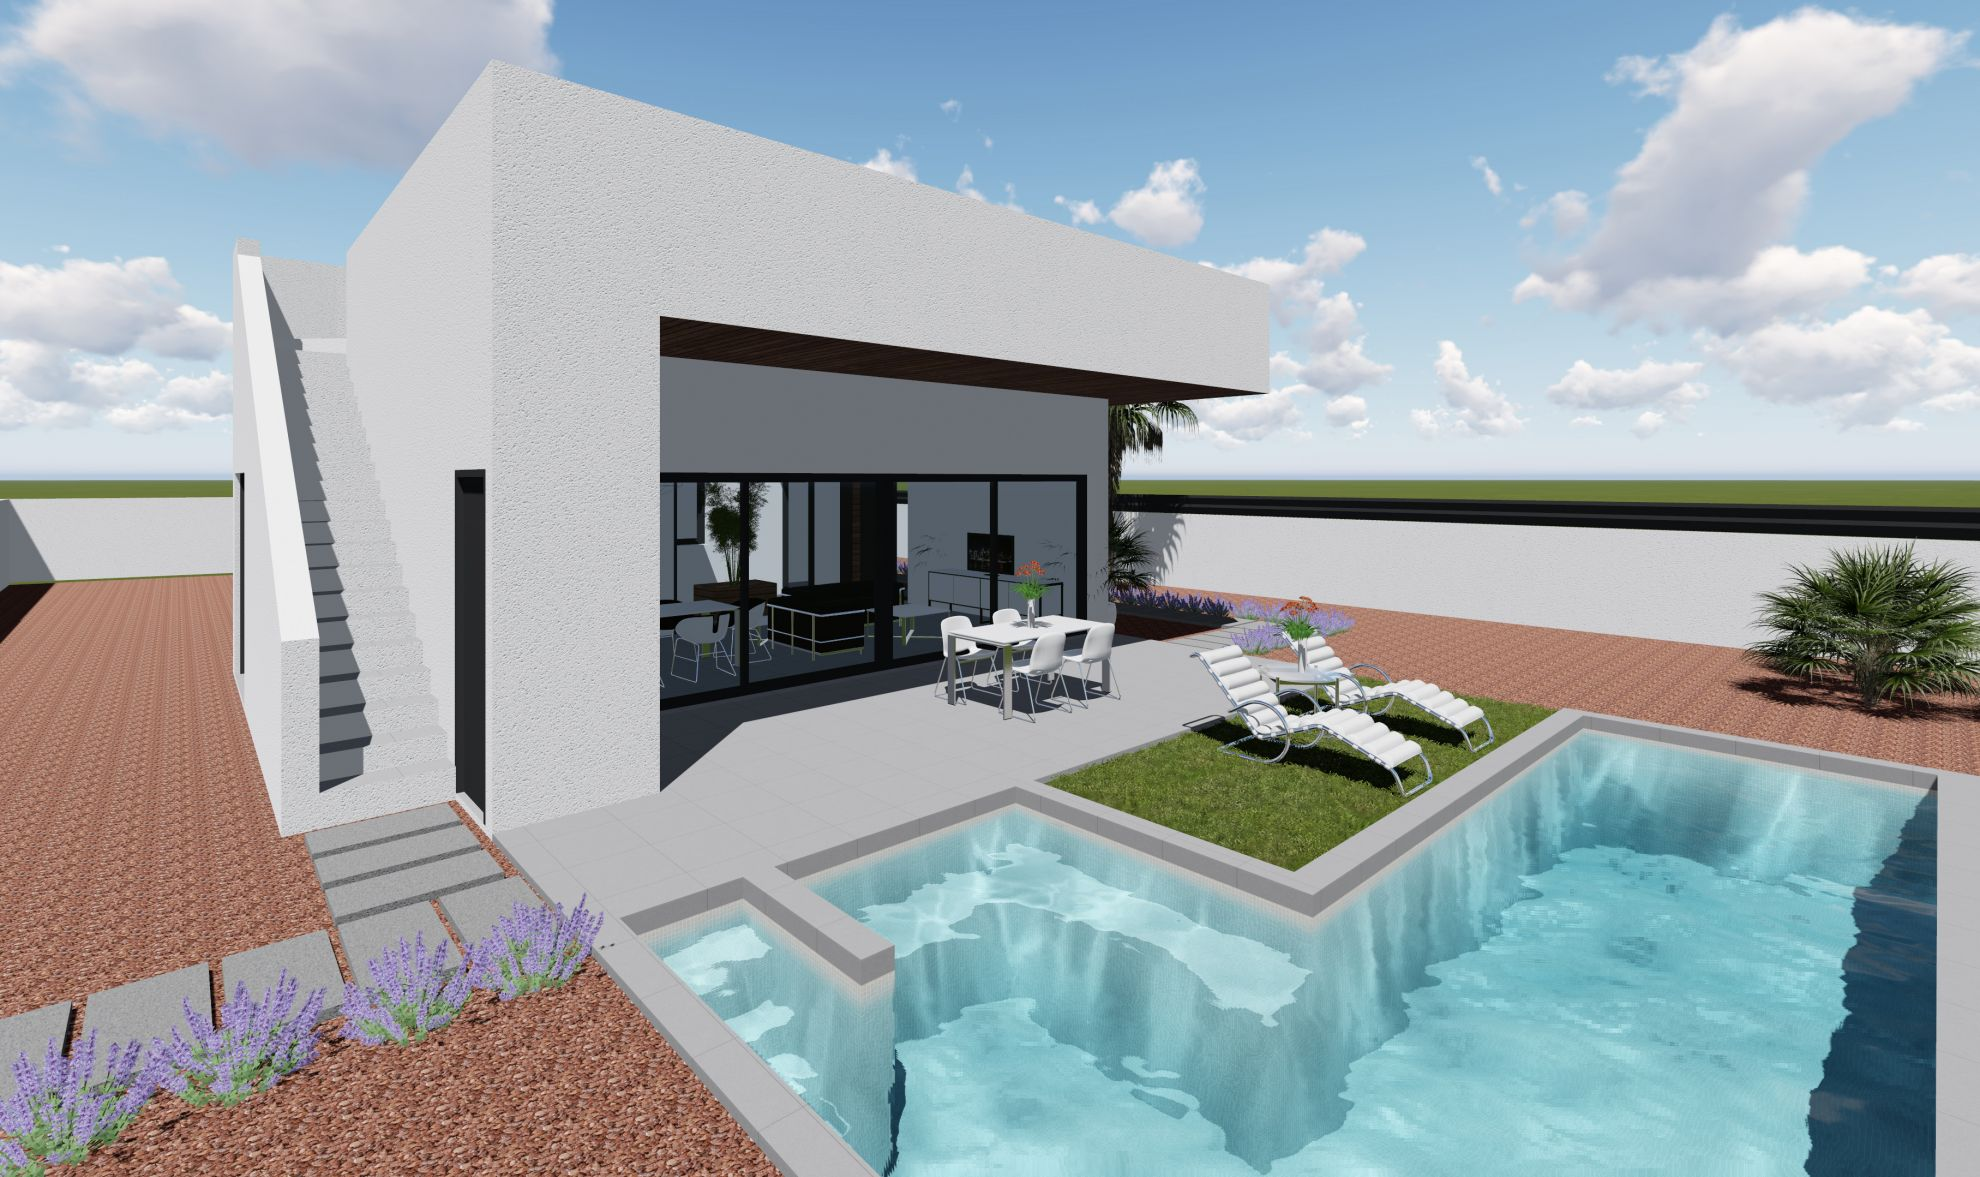 3 bedroom luxury villa with private pool and plot in San Fulgencio 3